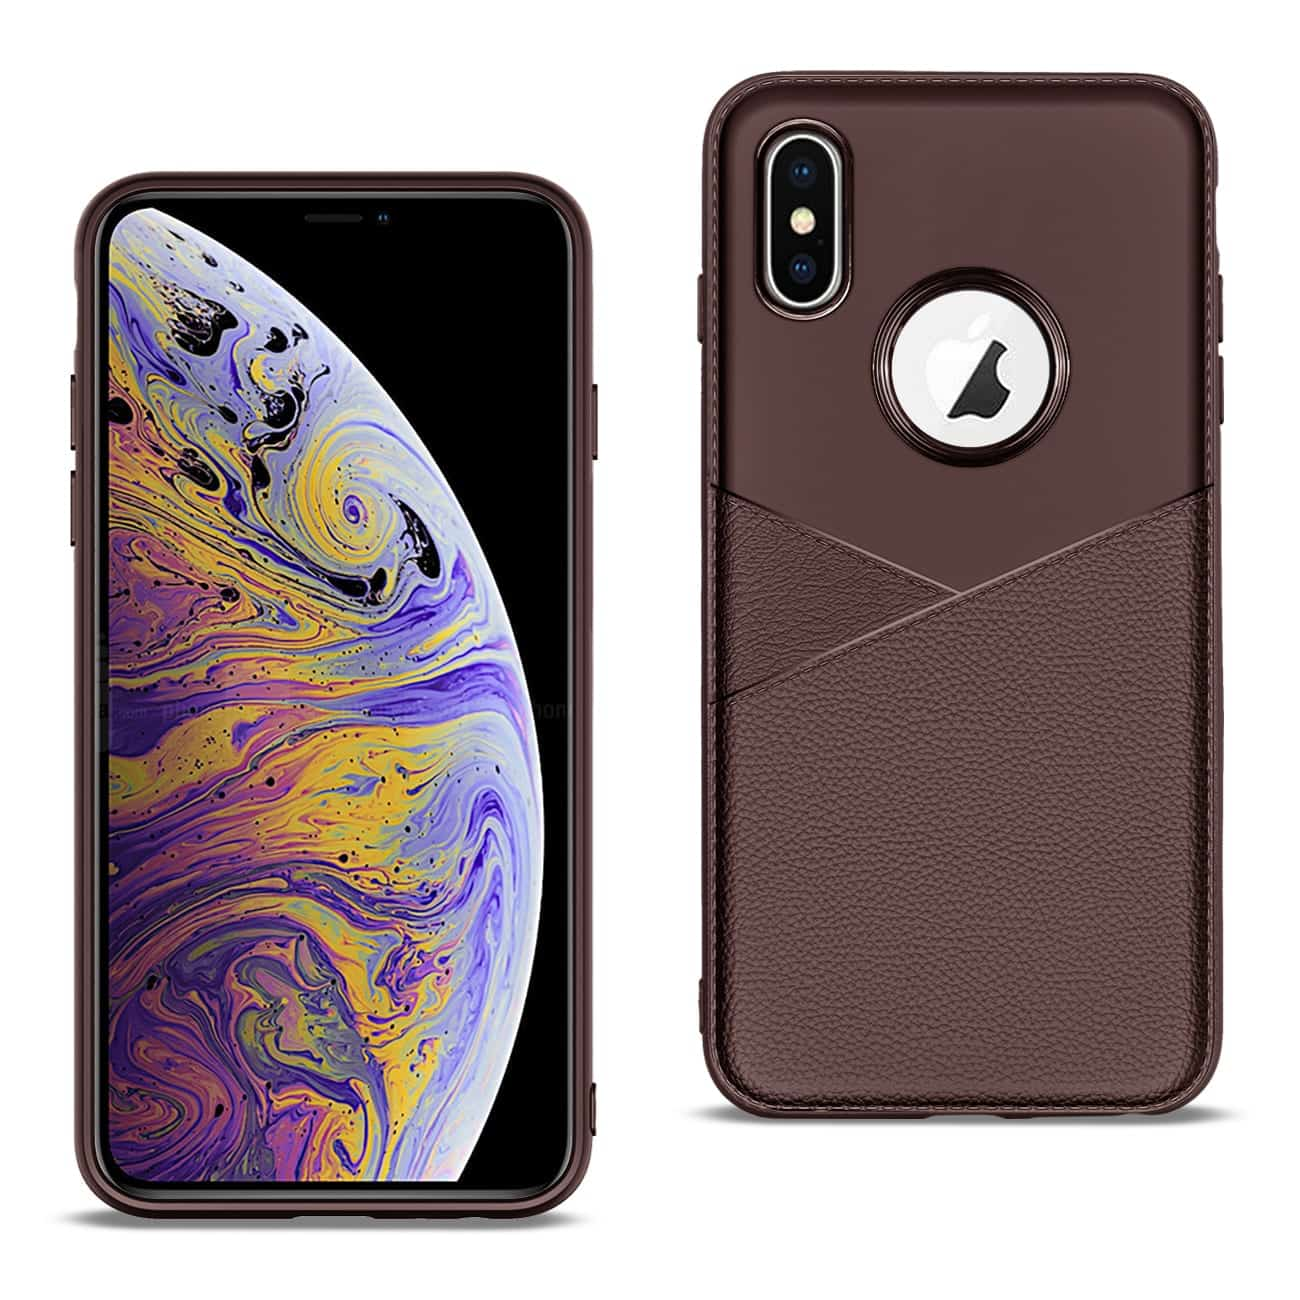 Apple iPhone XS MAX Good quality phone case in Brown